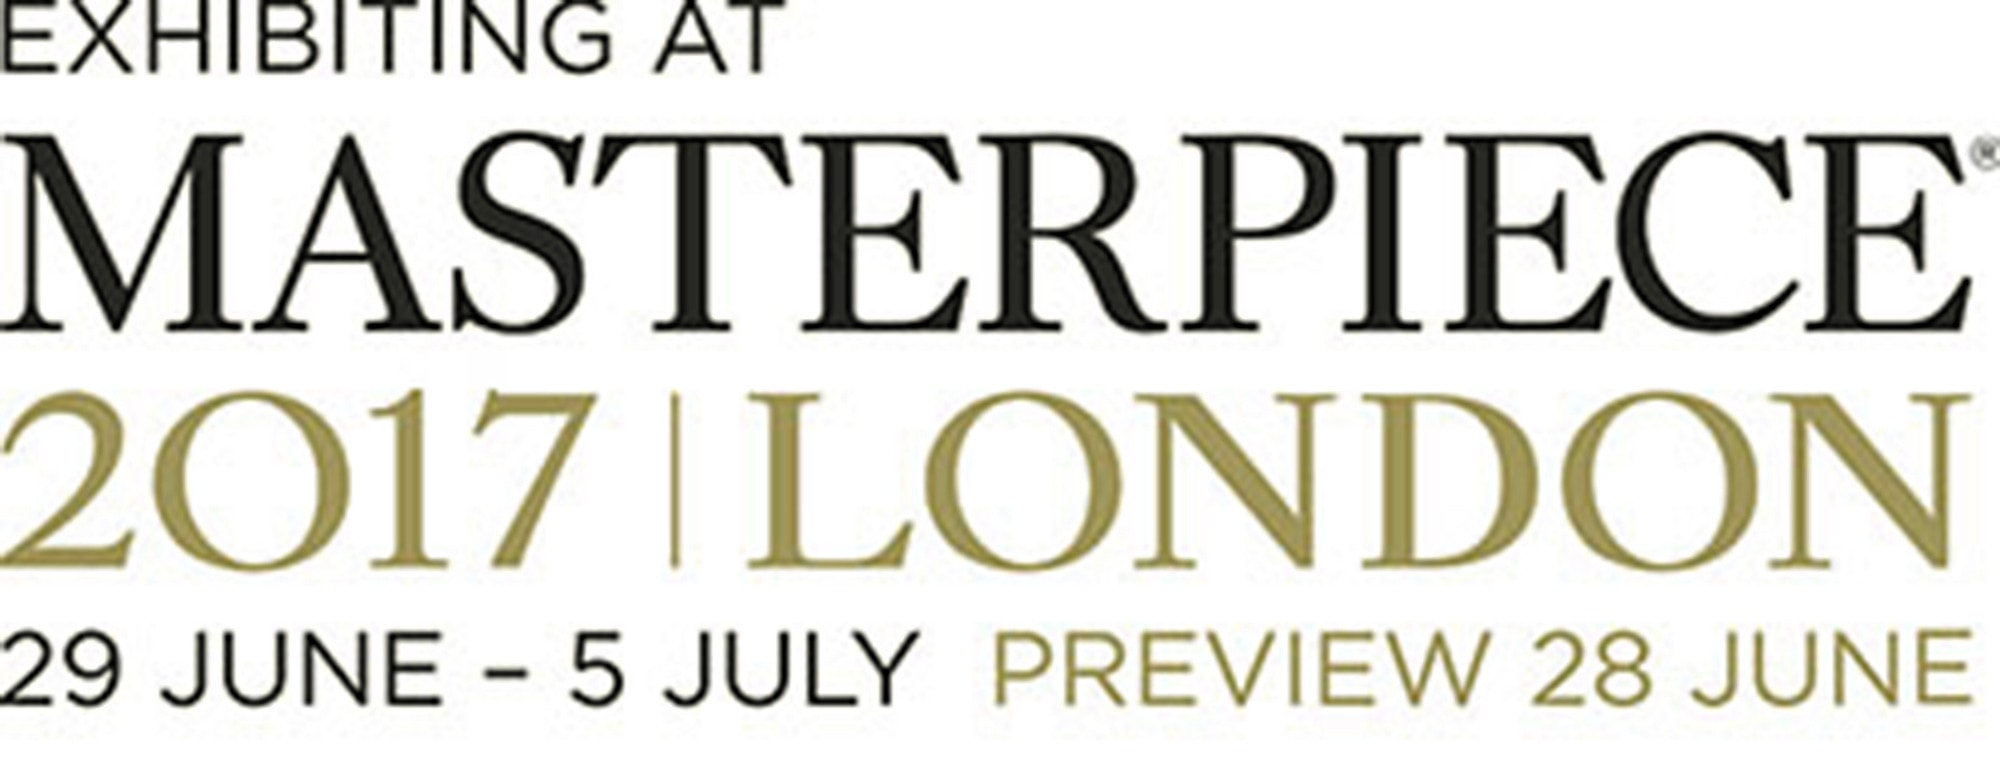 Masterpiece London from June 29 to July 5, 2017